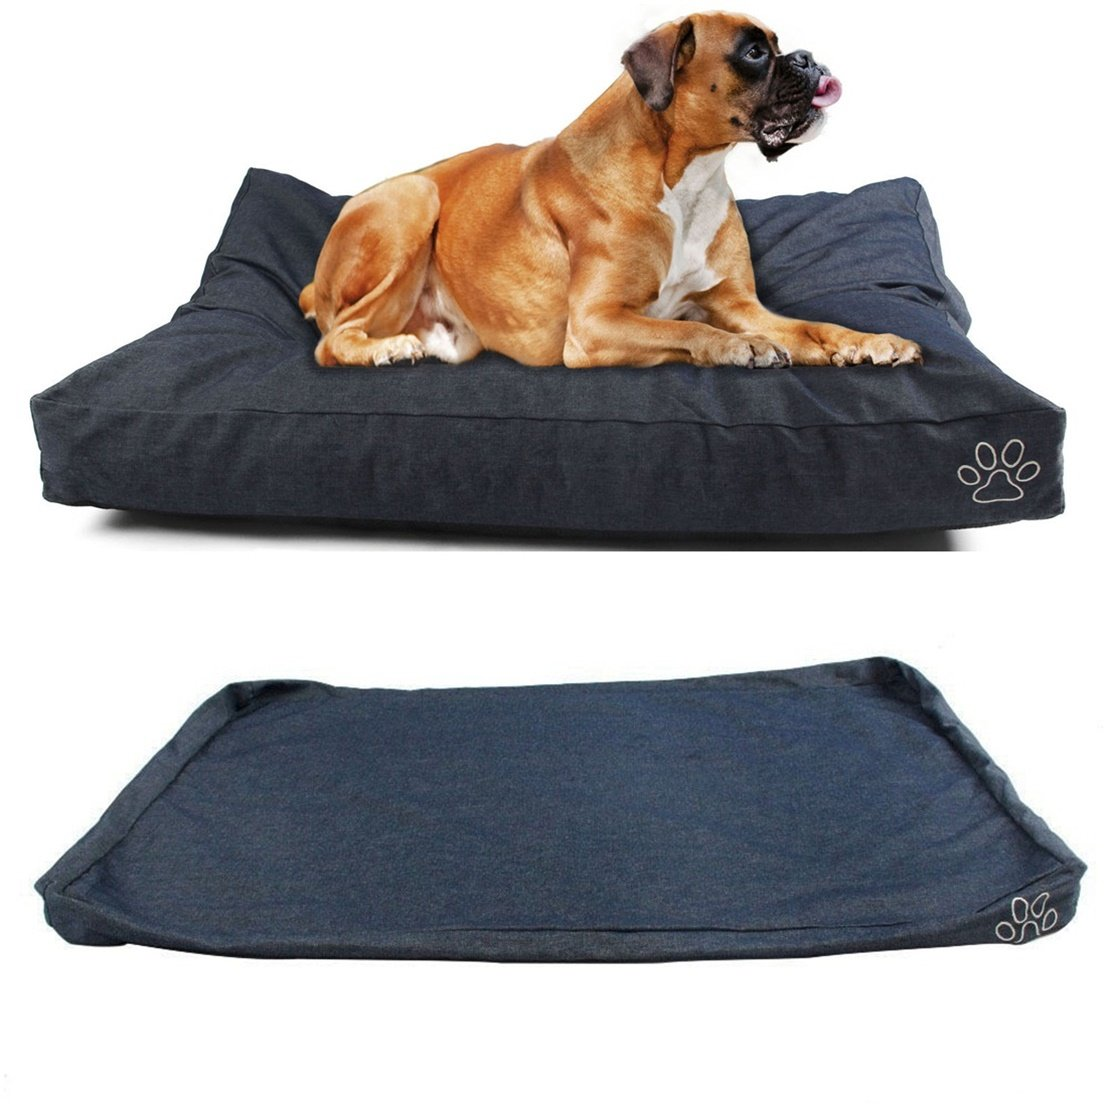 1Pcs Culminate Popular Pet Bed Cover Size L 36'' x 29'' Large Mat Dog Comfort Washable Color Type Blue Denim